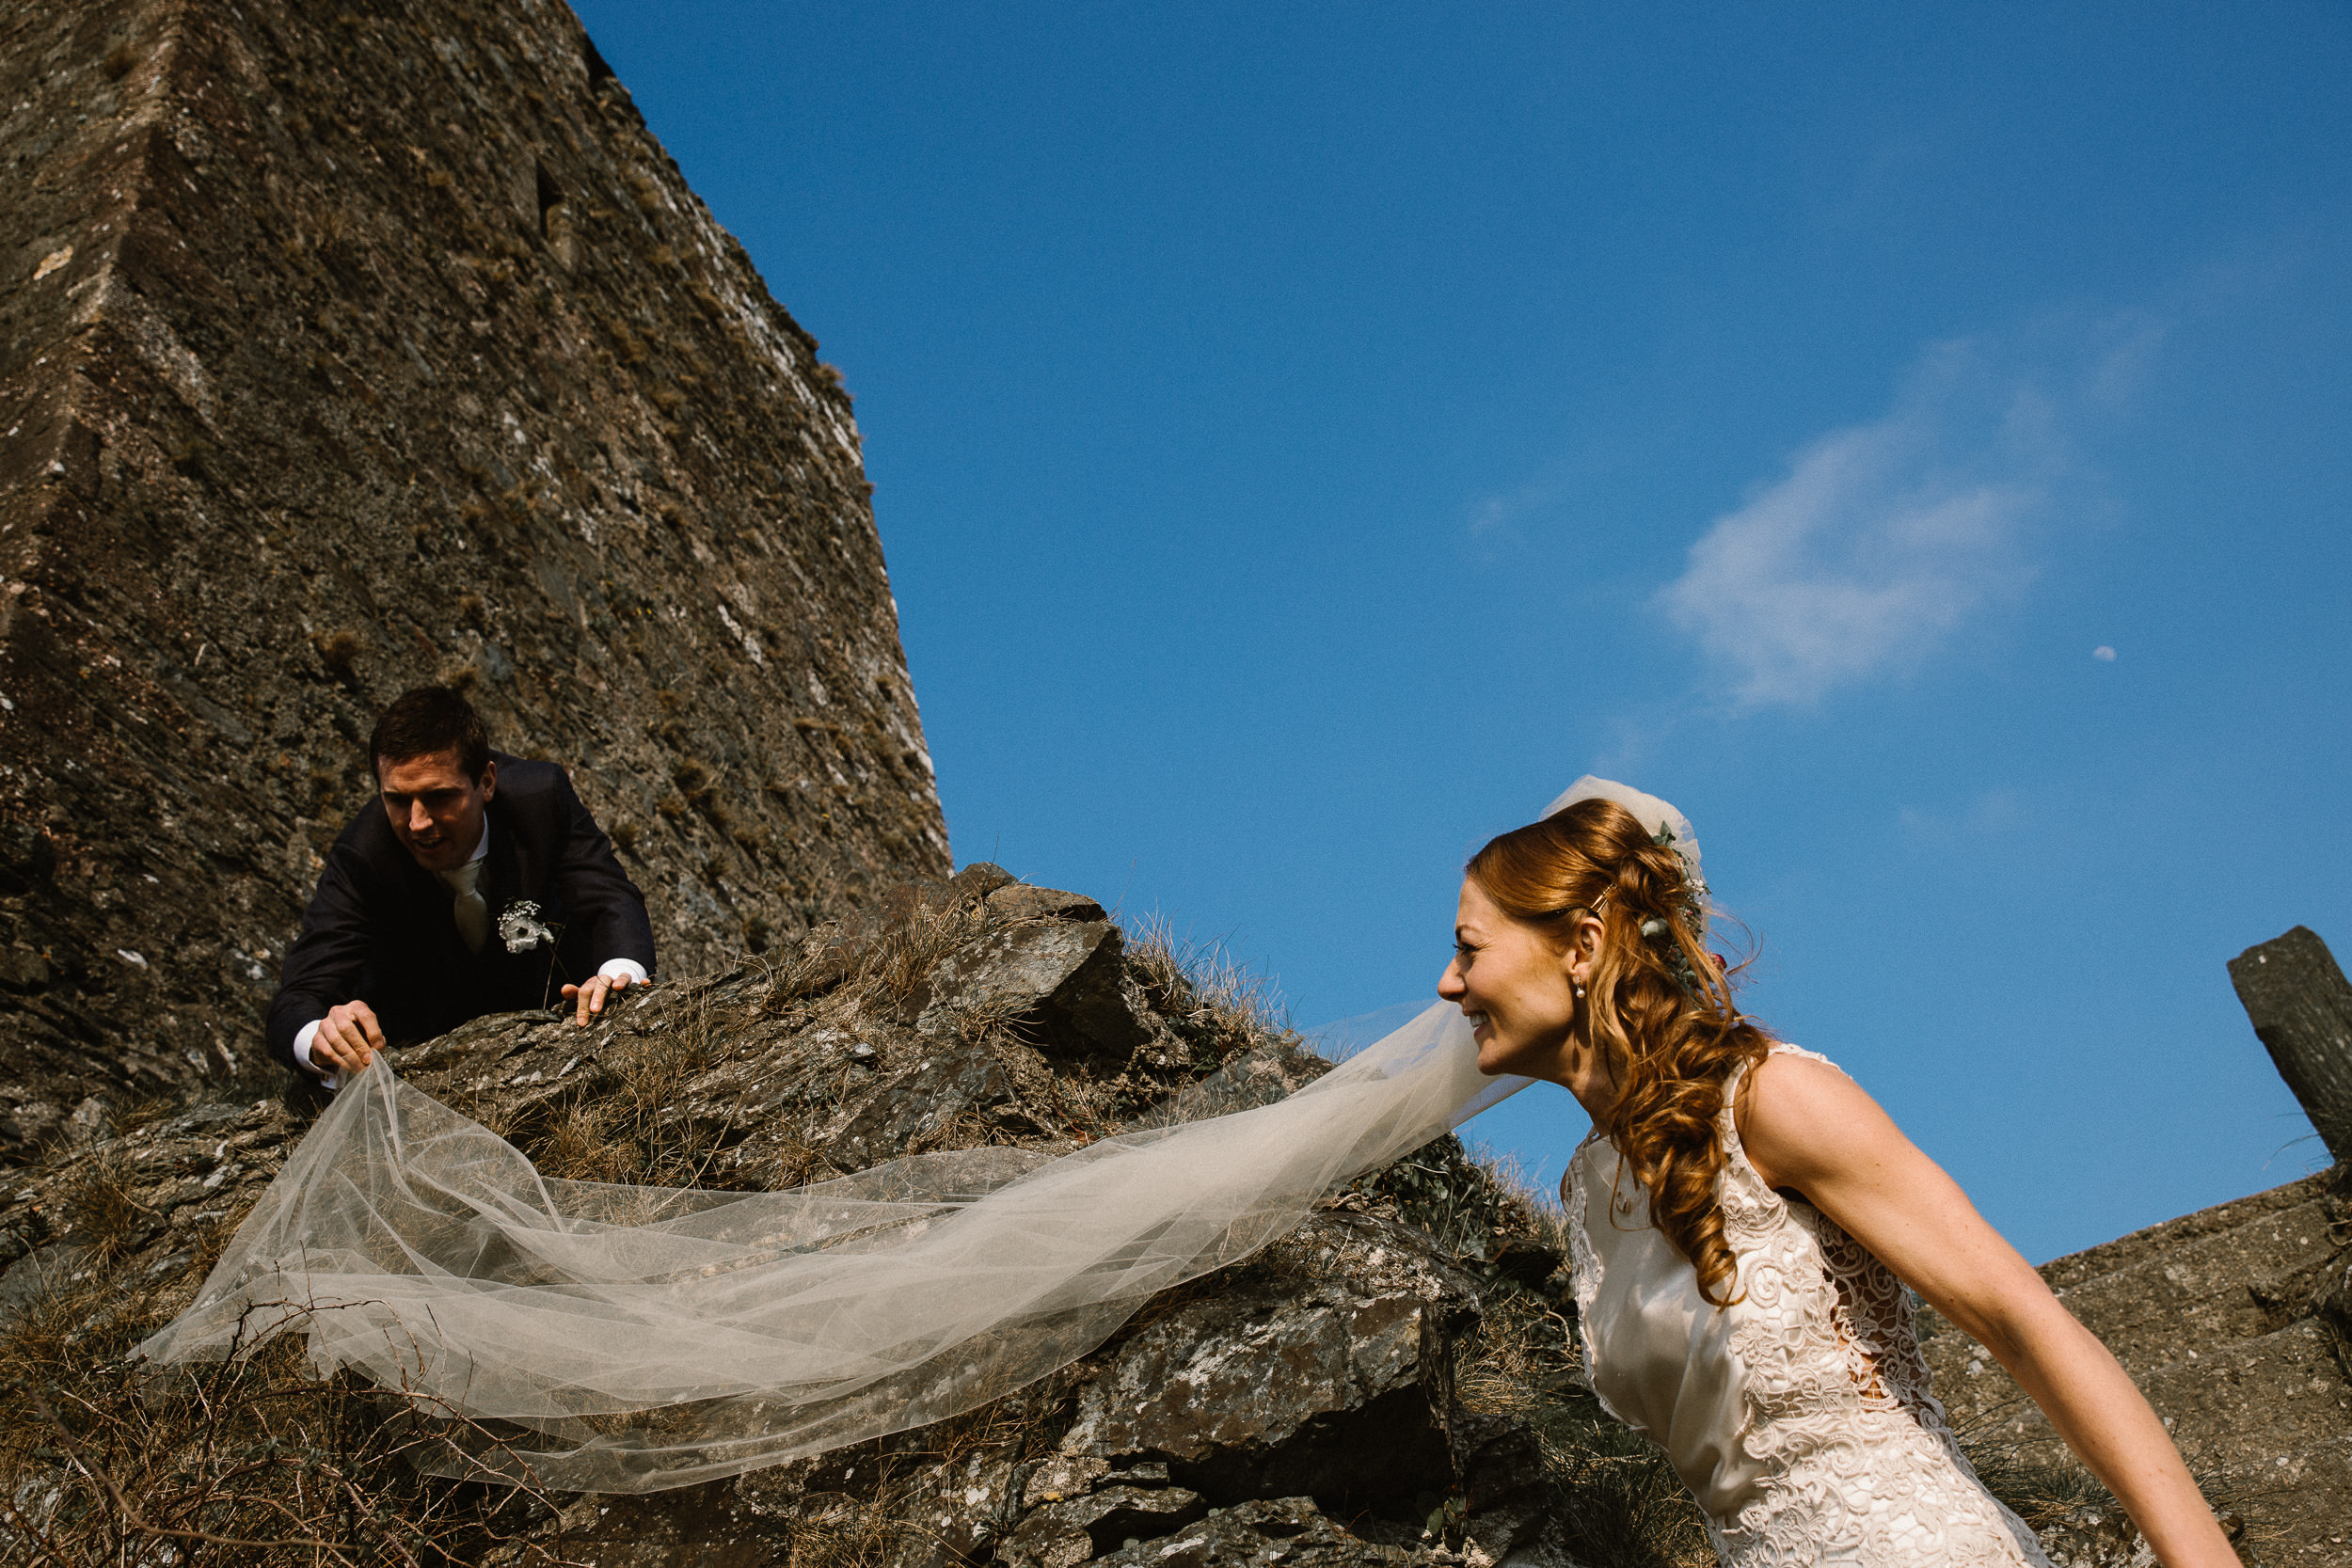 clairebyrnephotography-fun-wedding-photographer-ireland-creative-201.jpg